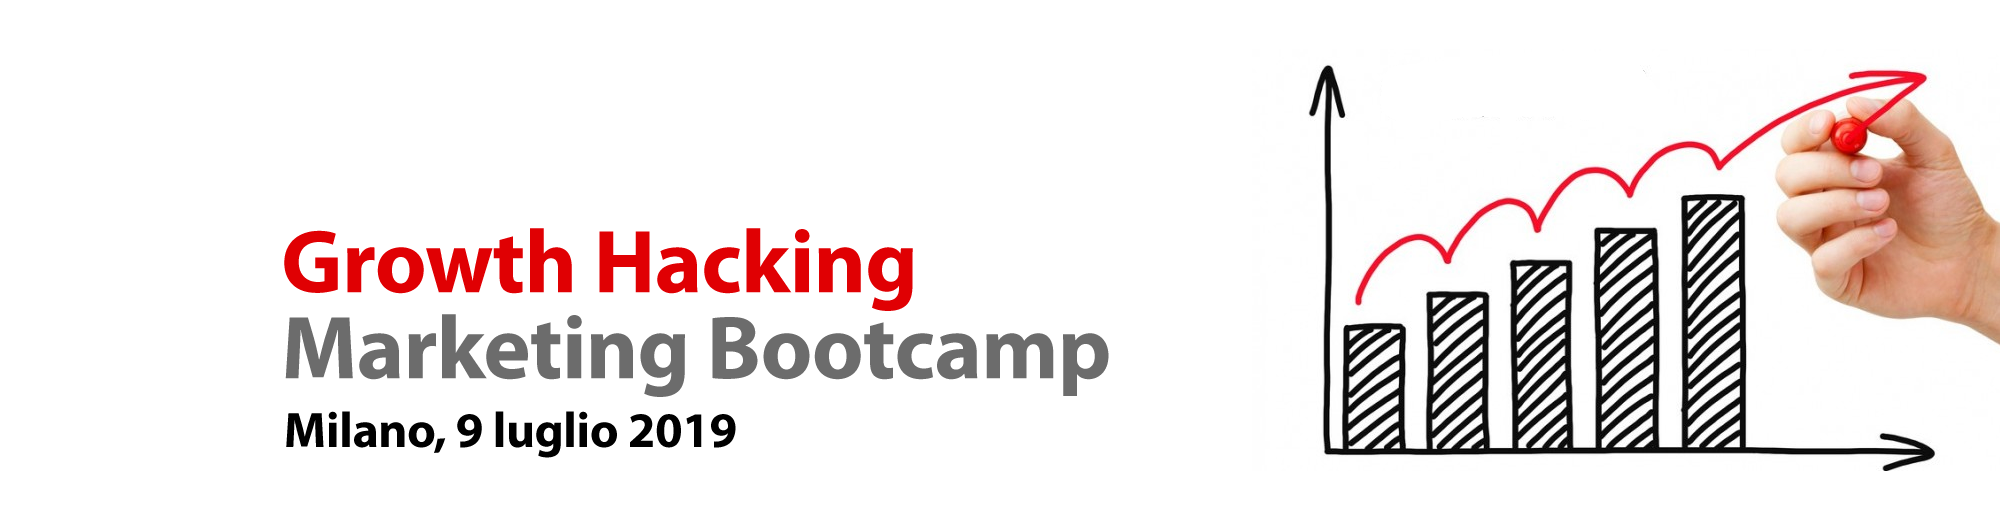 Growth Hacking Marketing Bootcamp